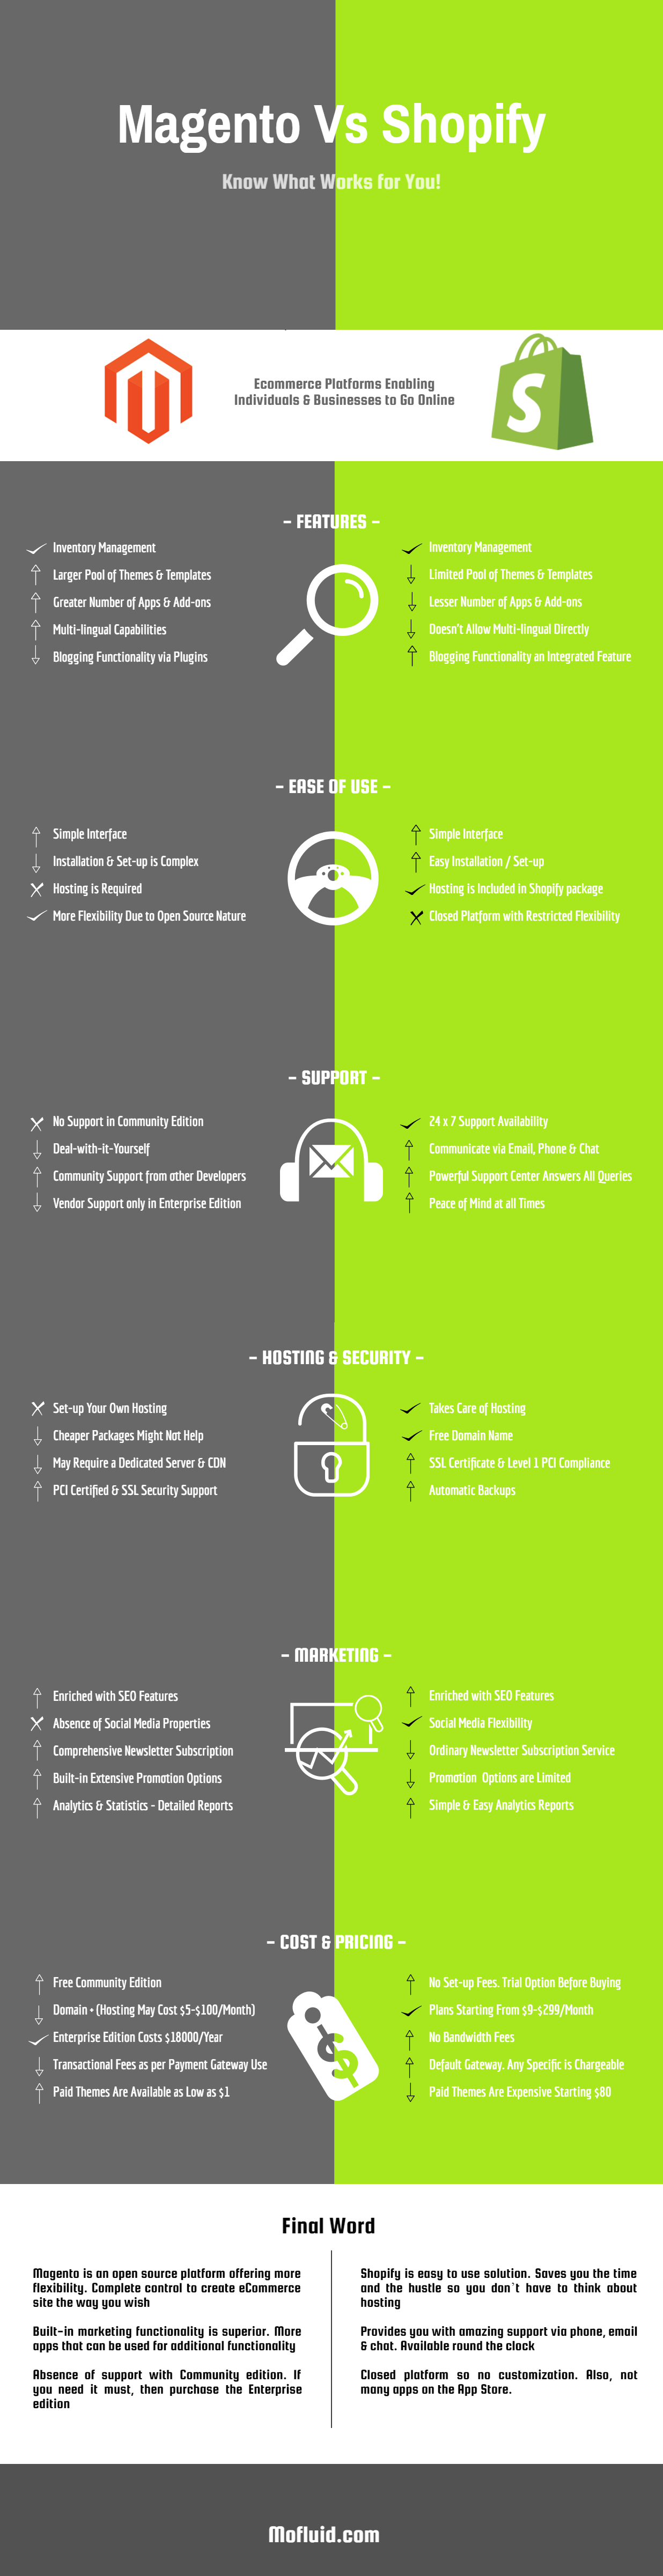 Shopify vs. Magento Infographic